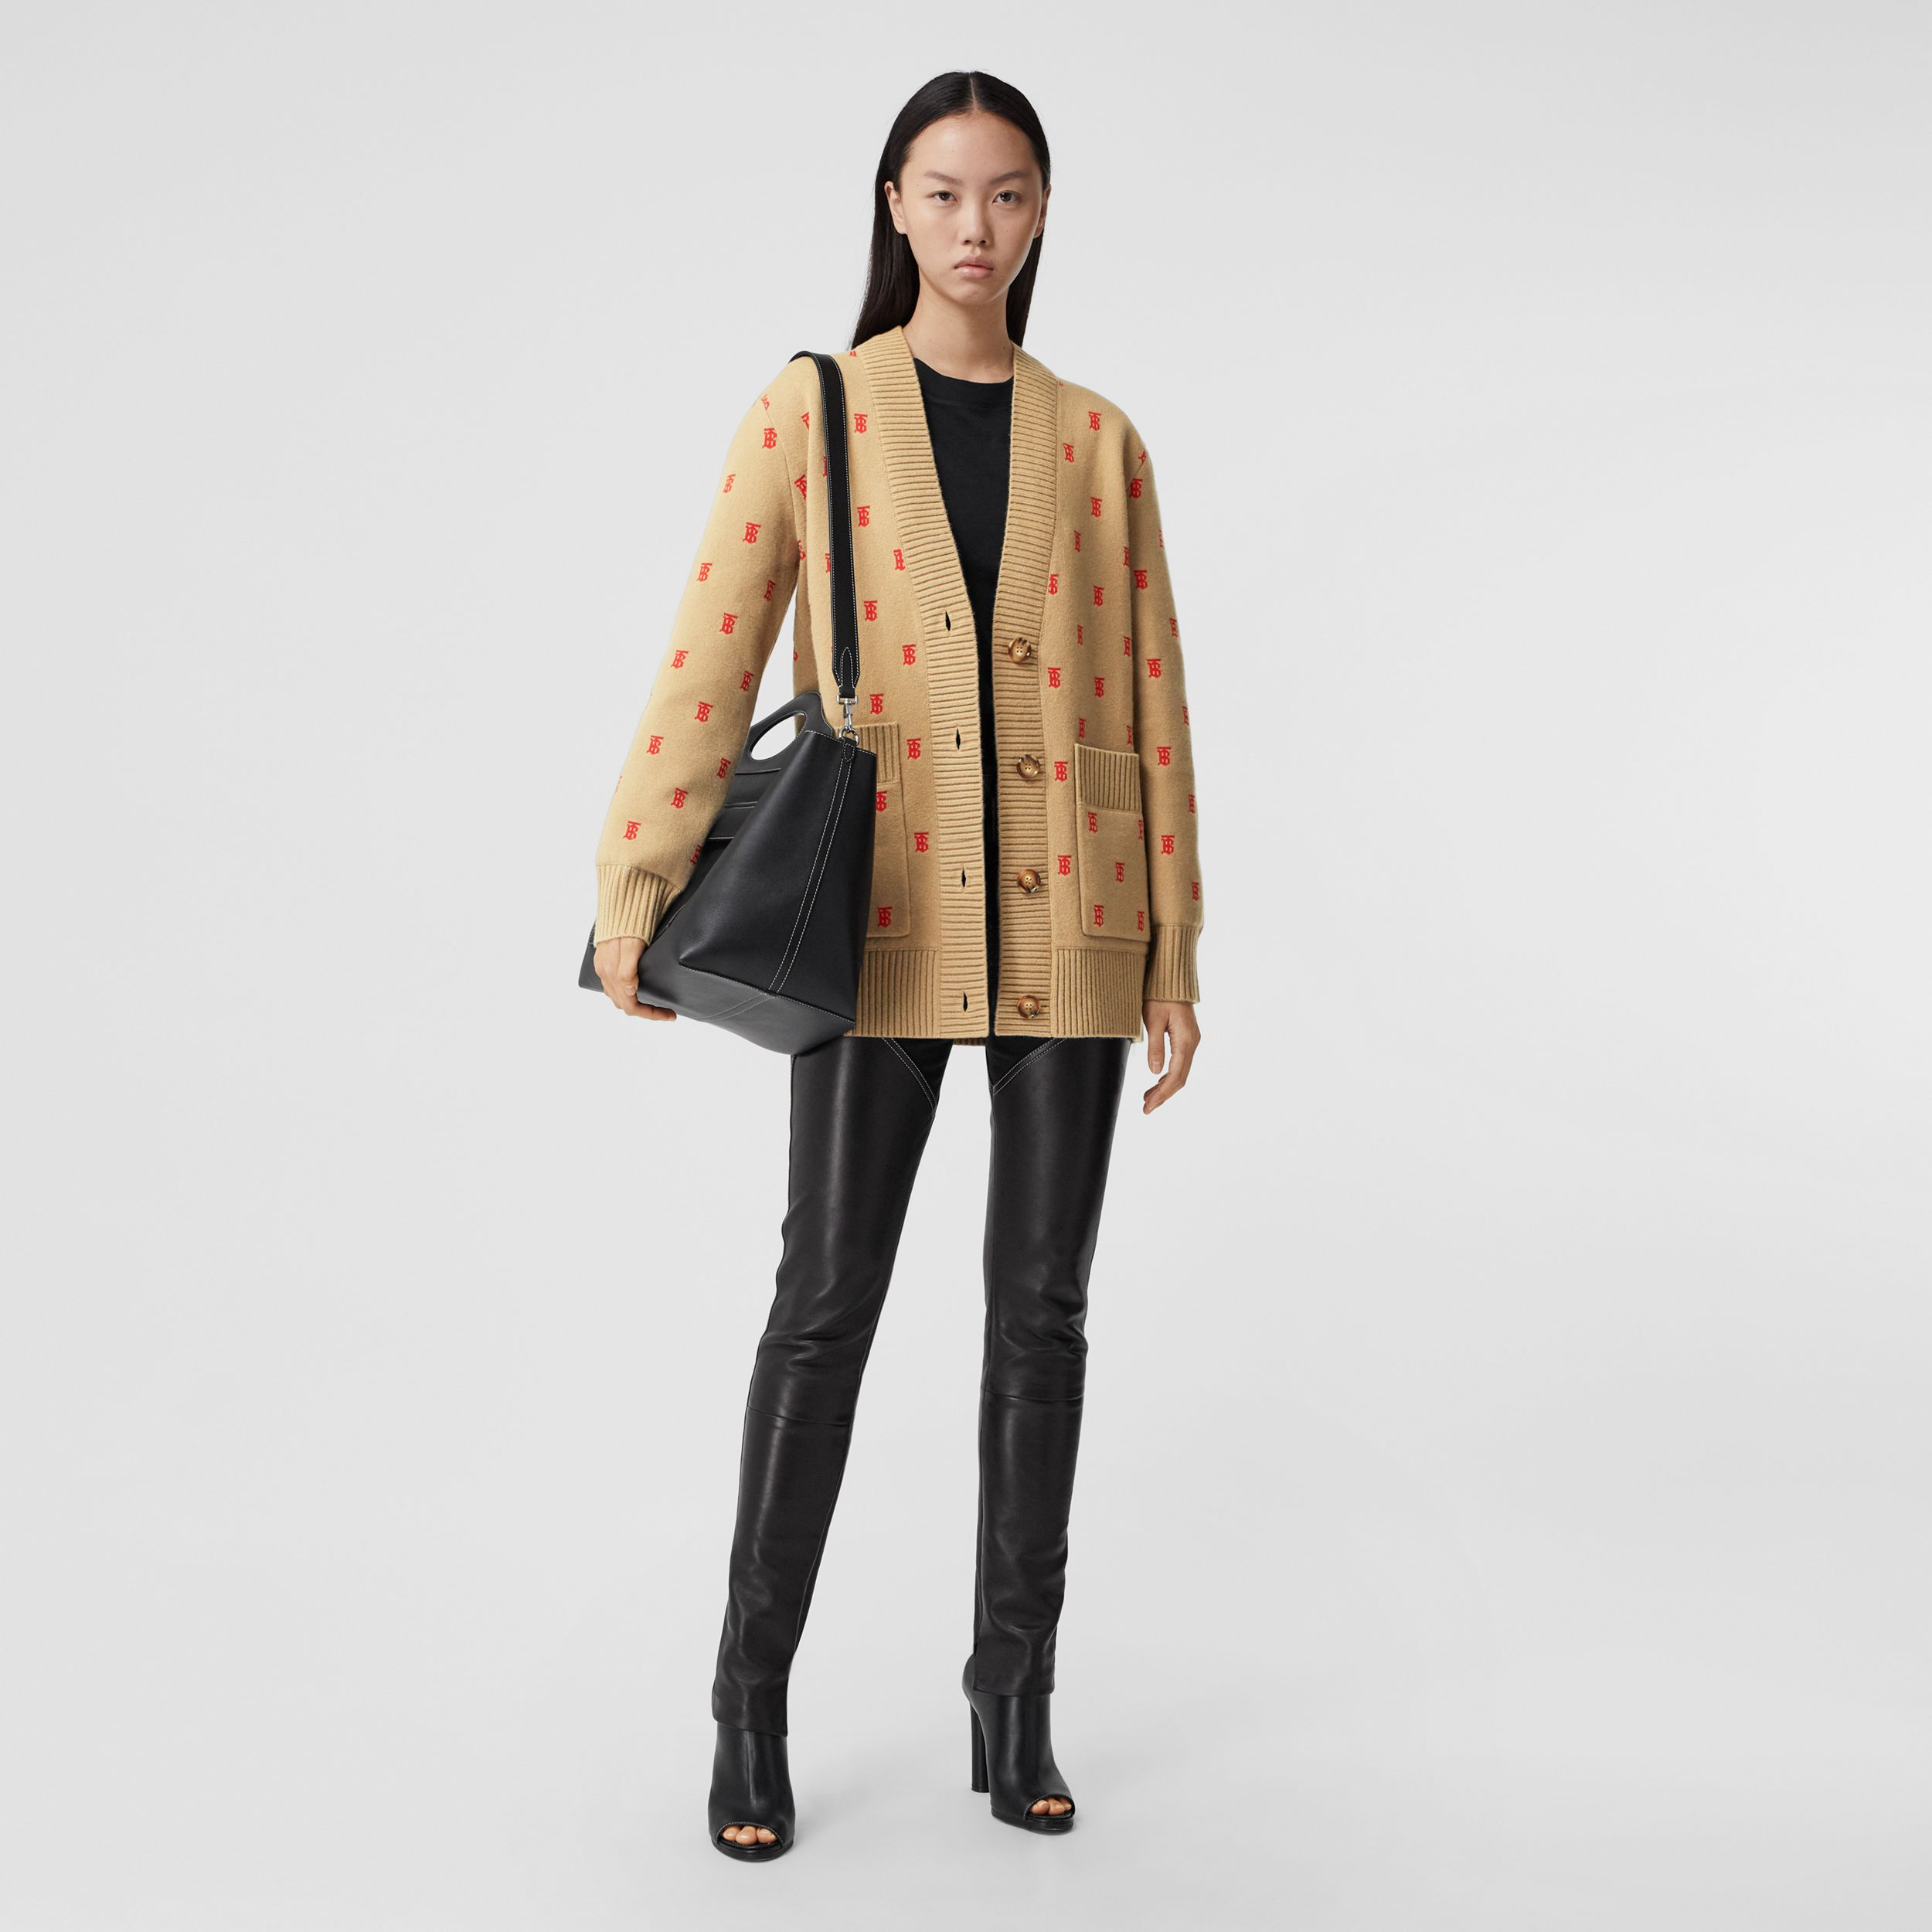 Monogram Wool Cashmere Blend Oversized Cardigan in Archive Beige - Women | Burberry Canada - 1